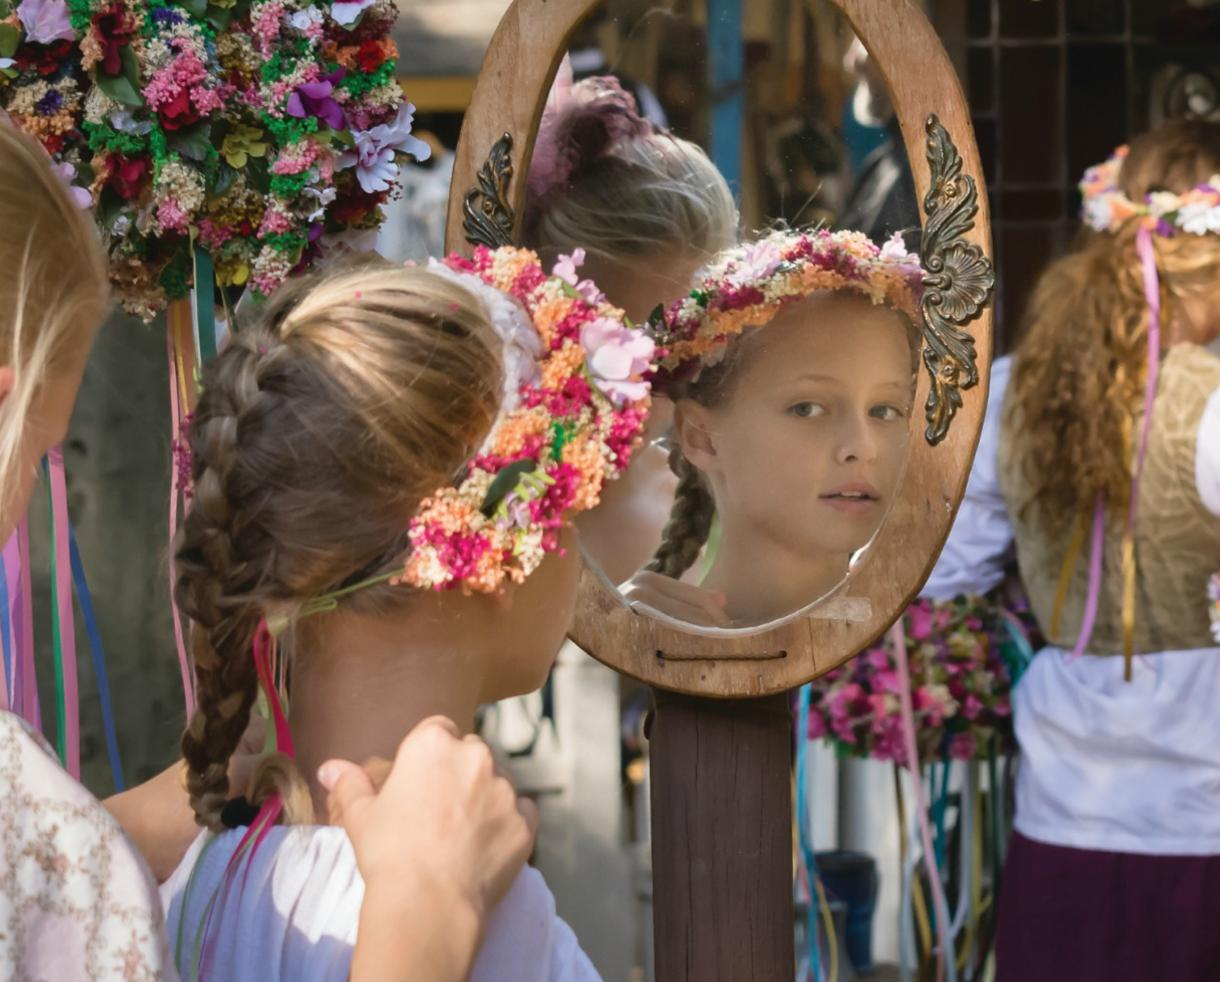 Maryland Renaissance Festival - August 26th & 27th - FREE Admission for Kids 15 and Under - Crownsville, MD